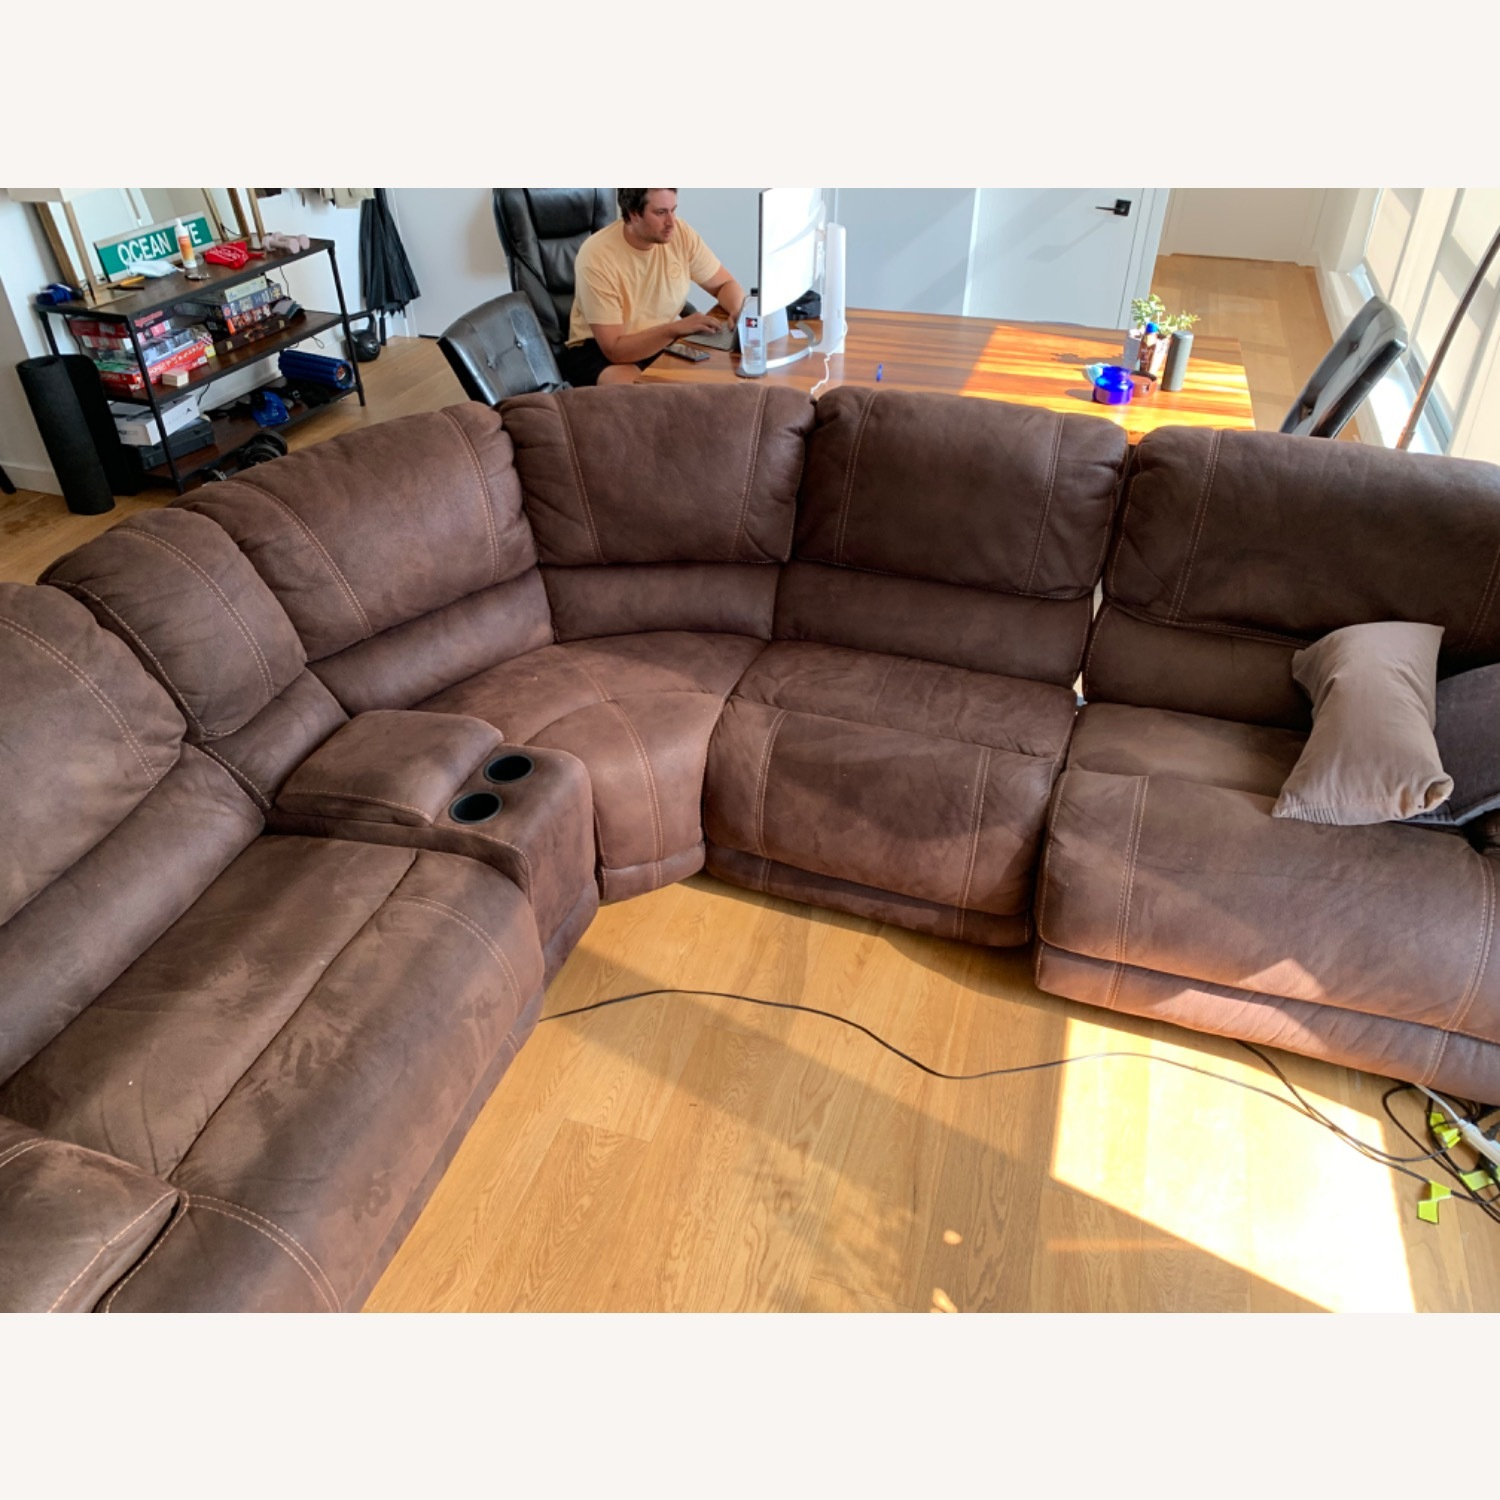 Pottery Barn Brown Leather 5 Piece Sectional - image-1